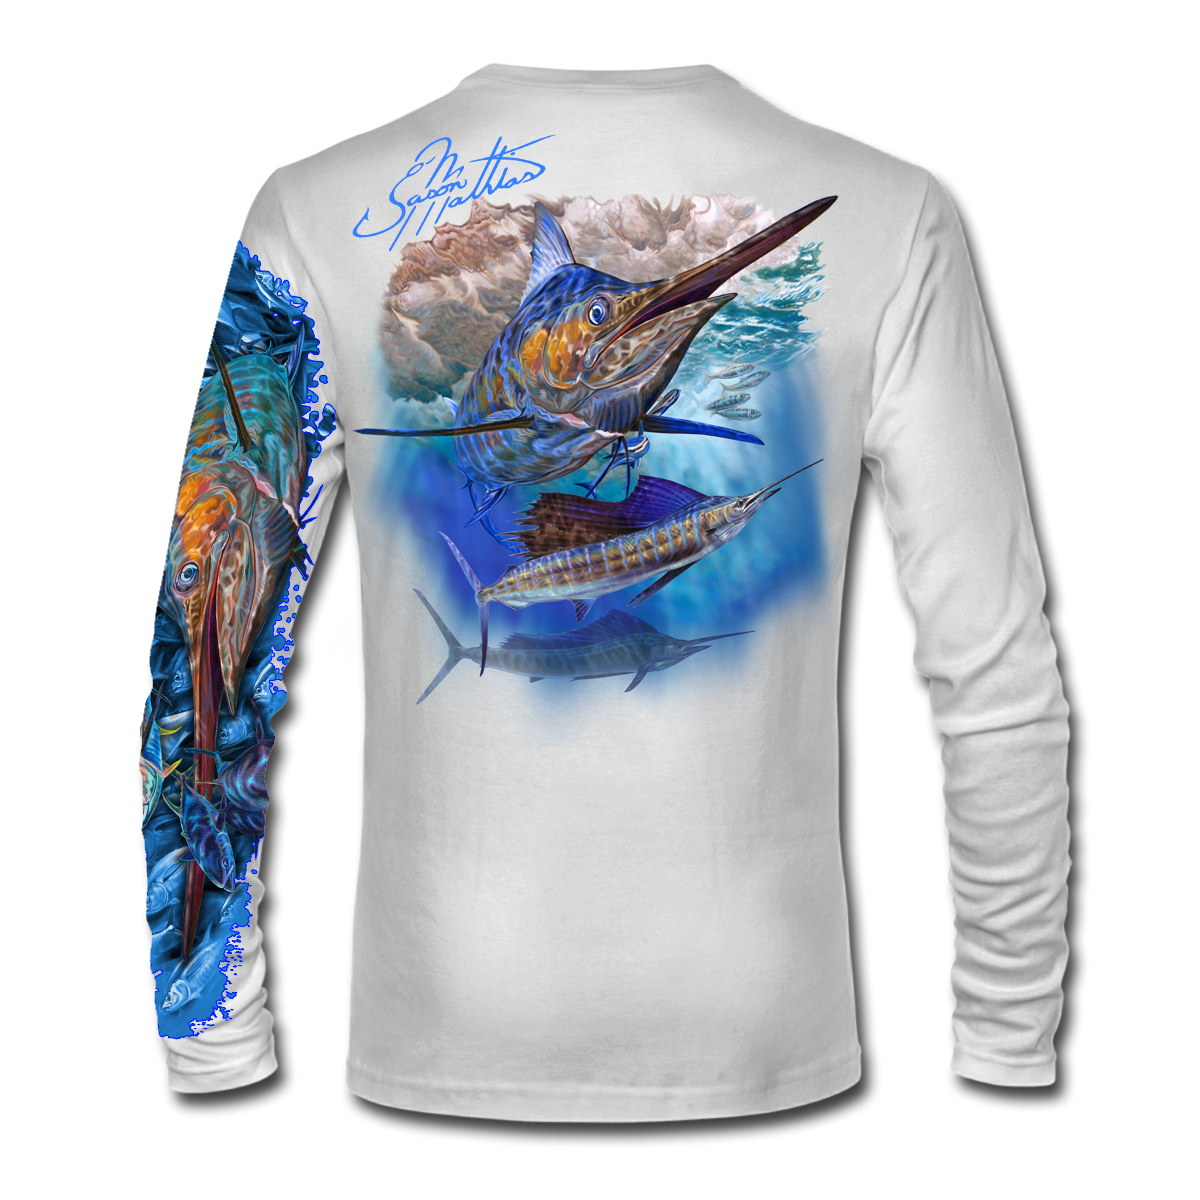 marlin-sailfish-white-shirt-jason-mathias-apparel-gear-fishing-gamefish-art-sportfish-art-tee-shirt-t-shirt-clothing.png